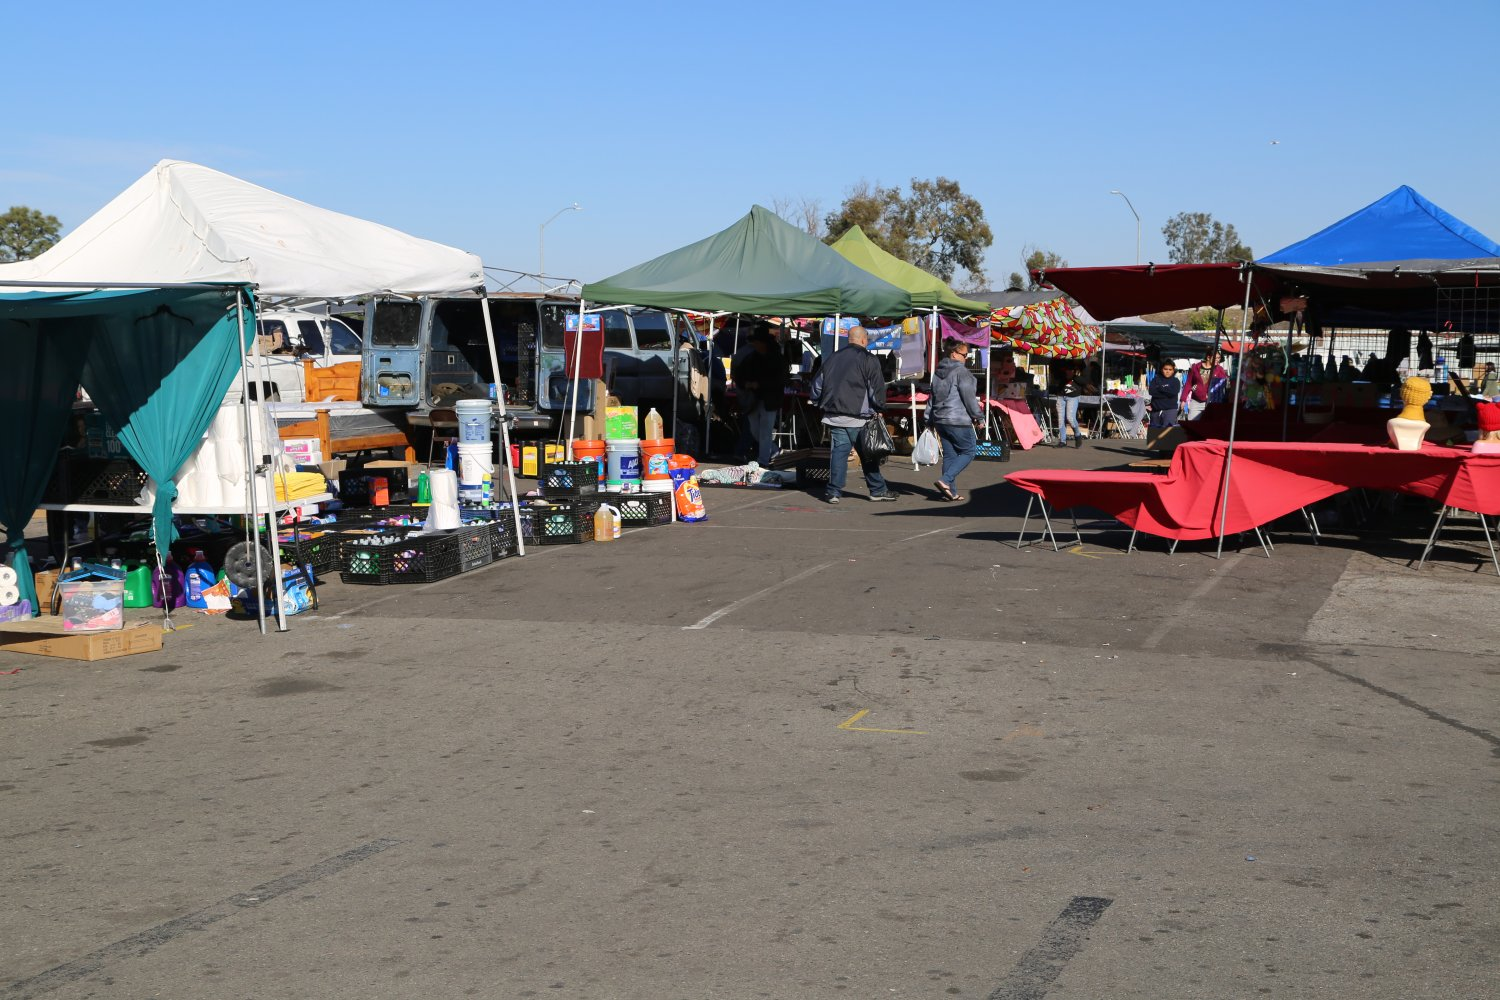 la outdoor swap meet